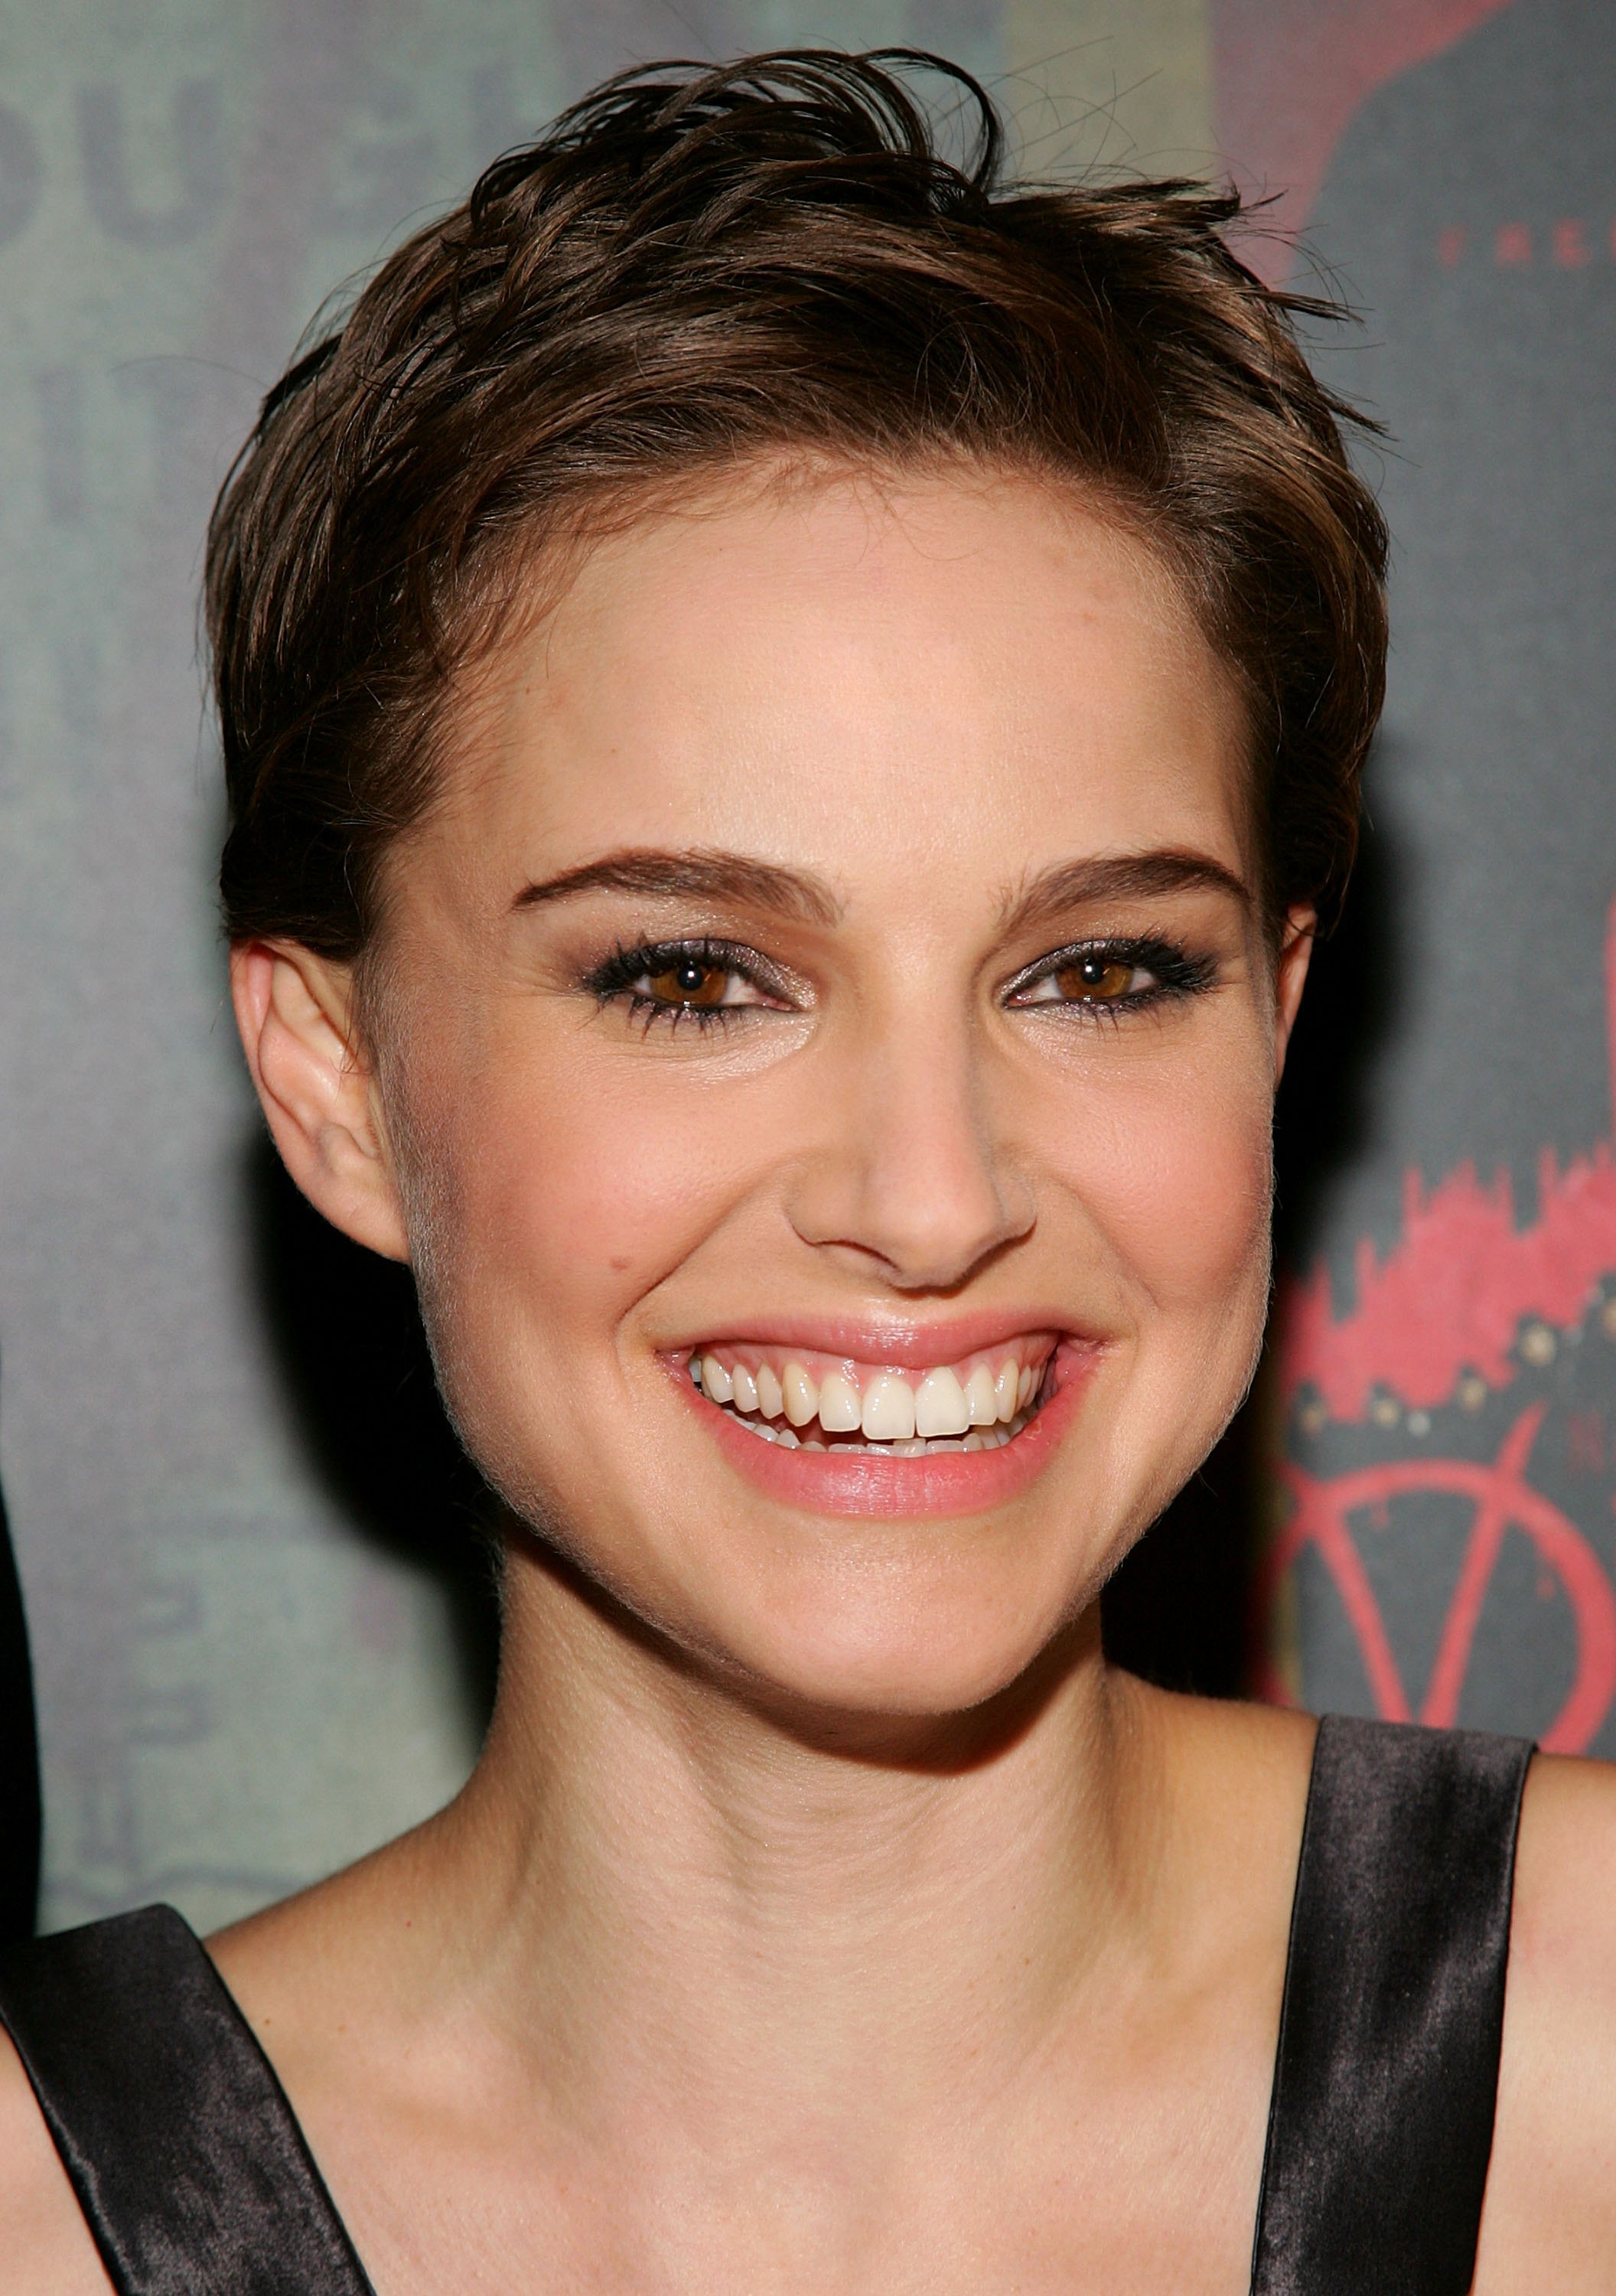 The 17 Best Pixie Cuts Of All Time For Some Serious Short Hair